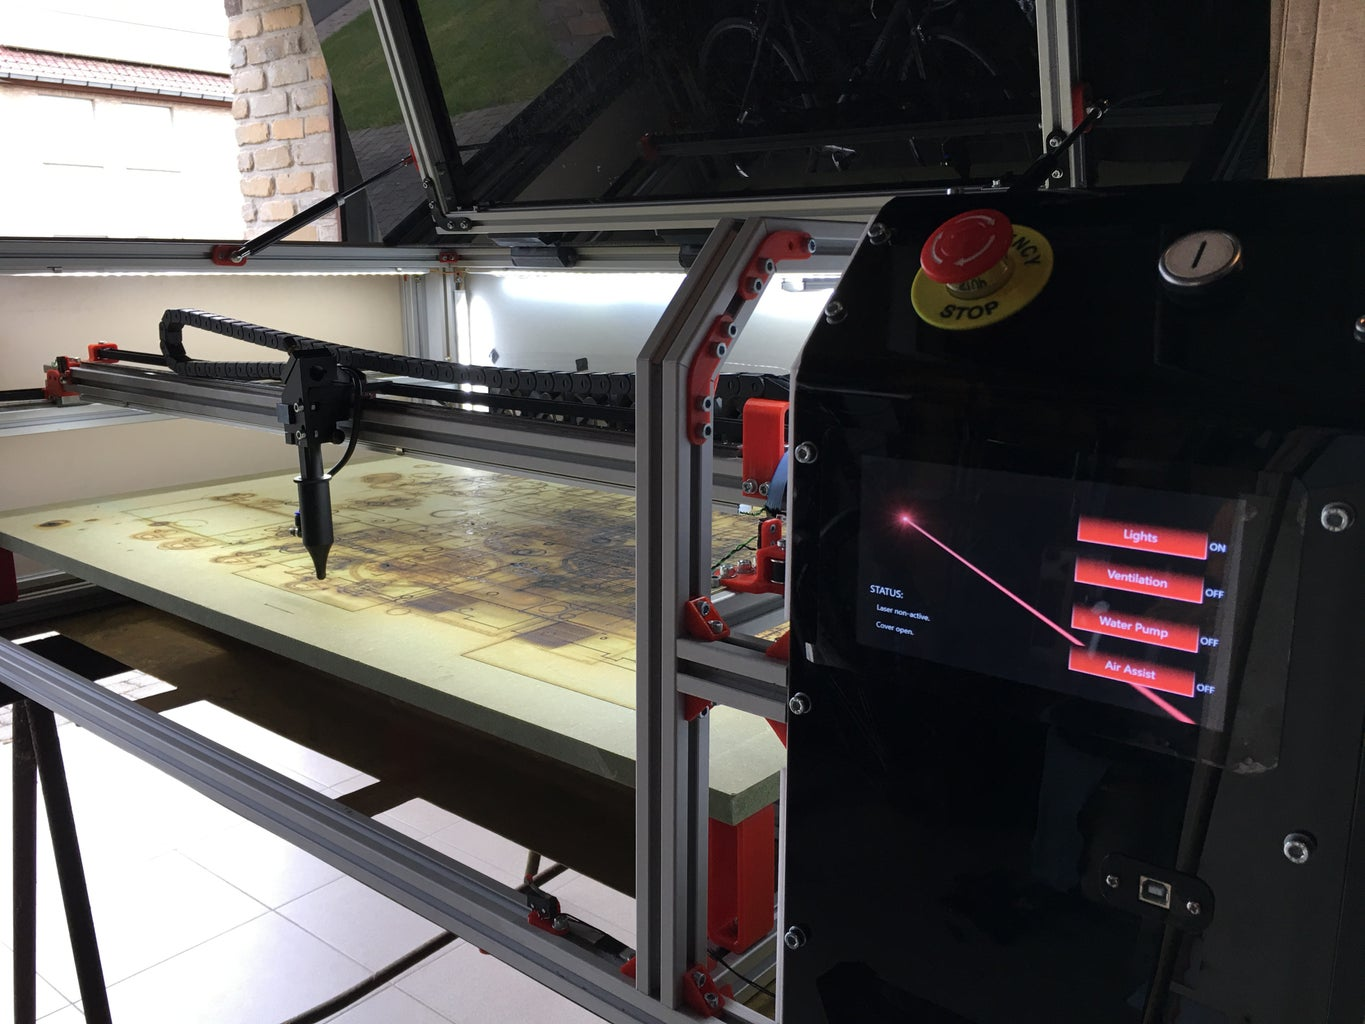 How to Use Your Lasercutter?